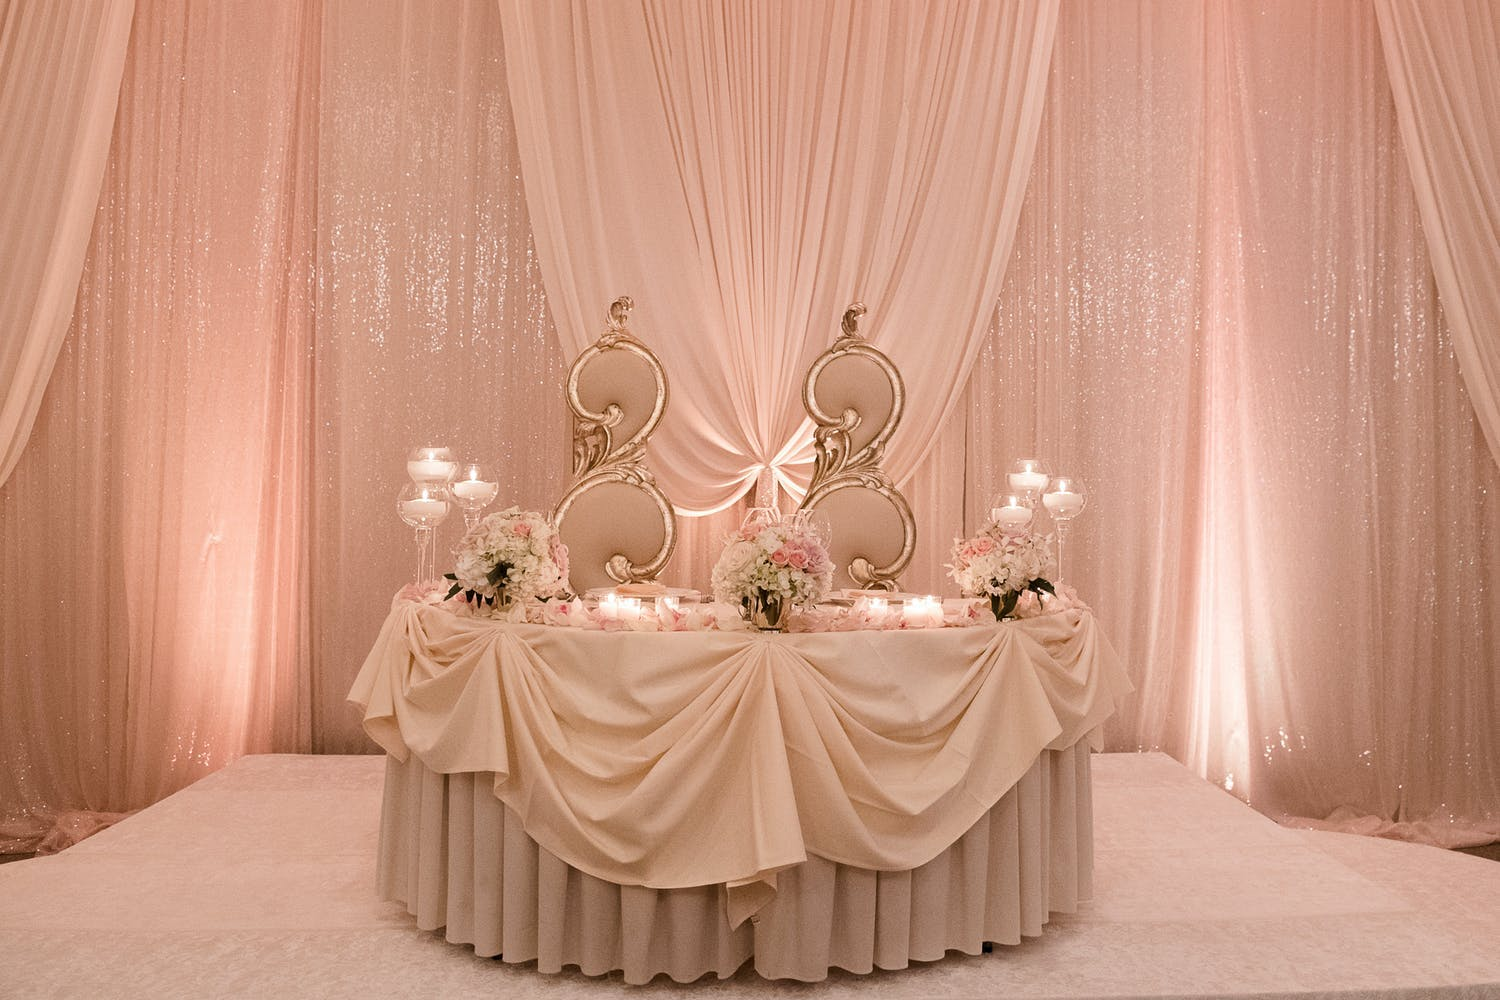 Pink and Gold Sweet Heart Table with Pink, Shimmery Backdrop at 60th-Anniversary Party | PartySlate